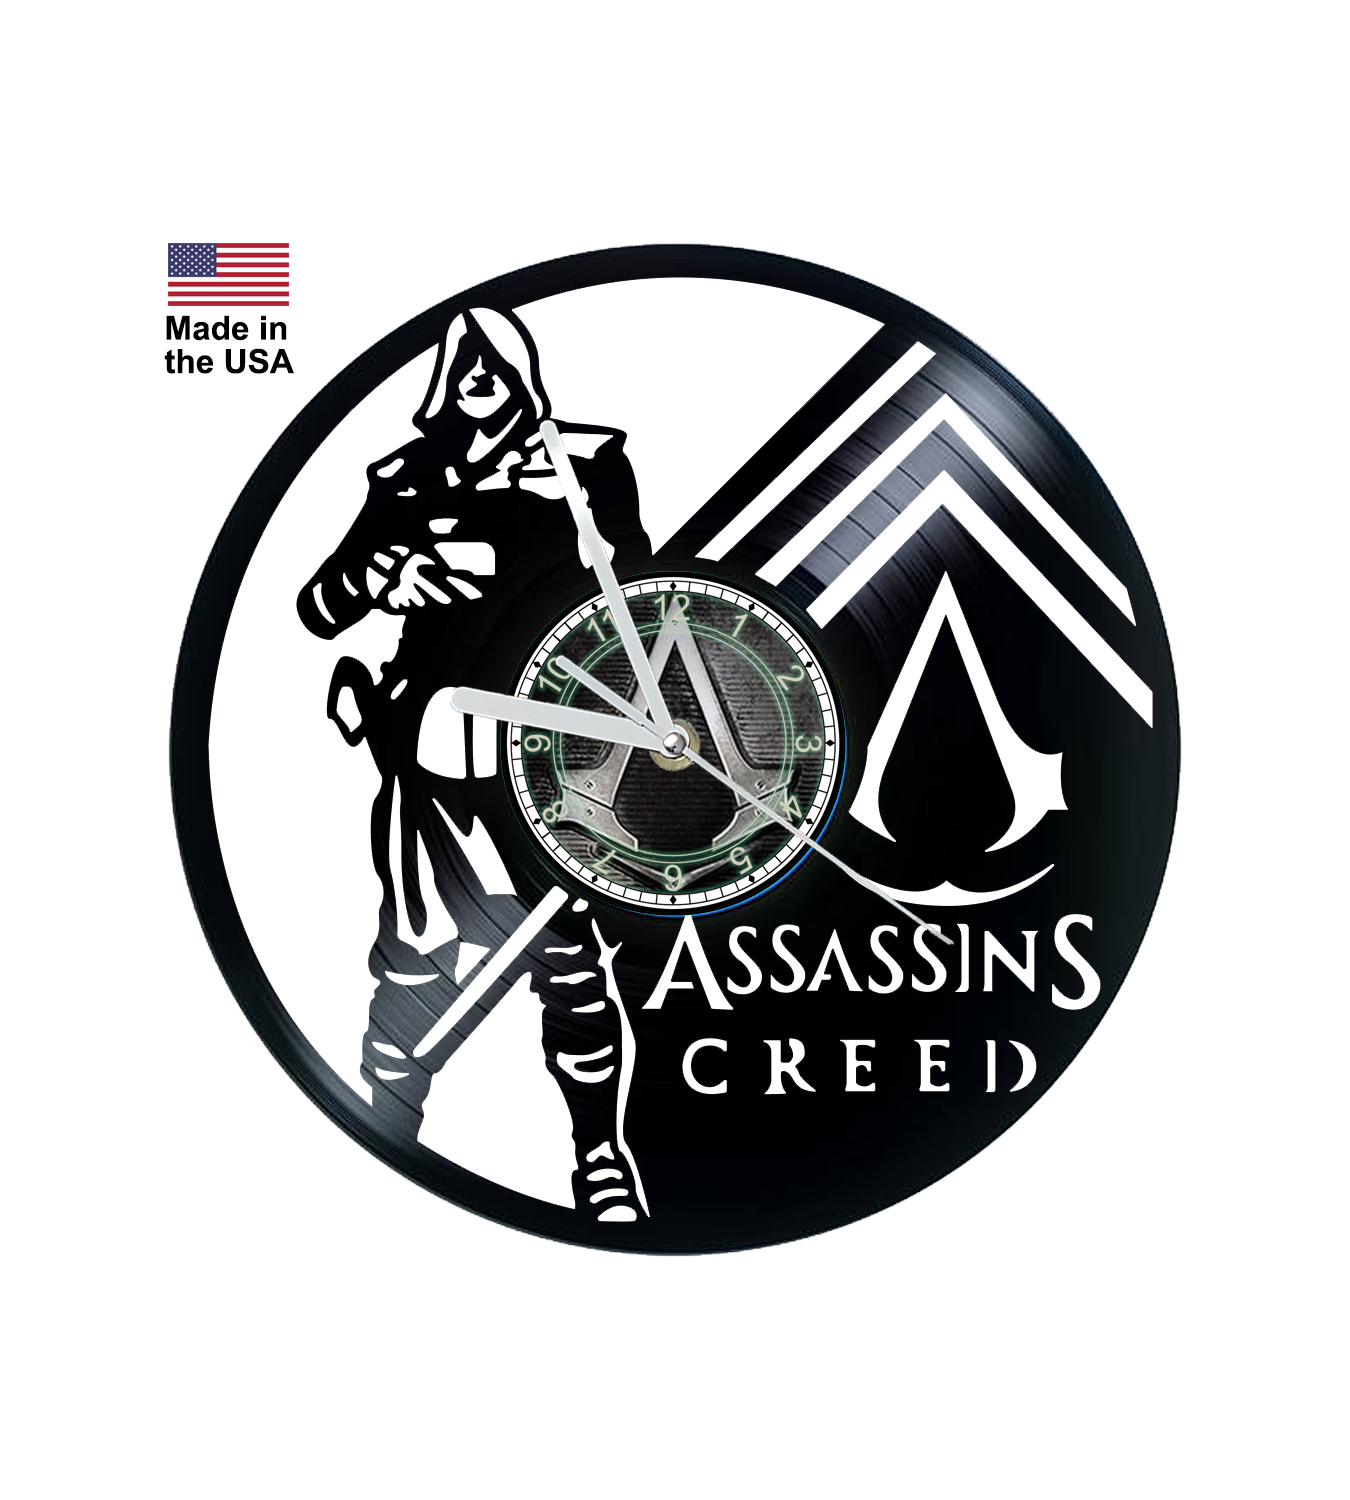 Vinyl Clock, Assassins Creed, Video Game, Christmas gift, Wall clock, vinyl record clock